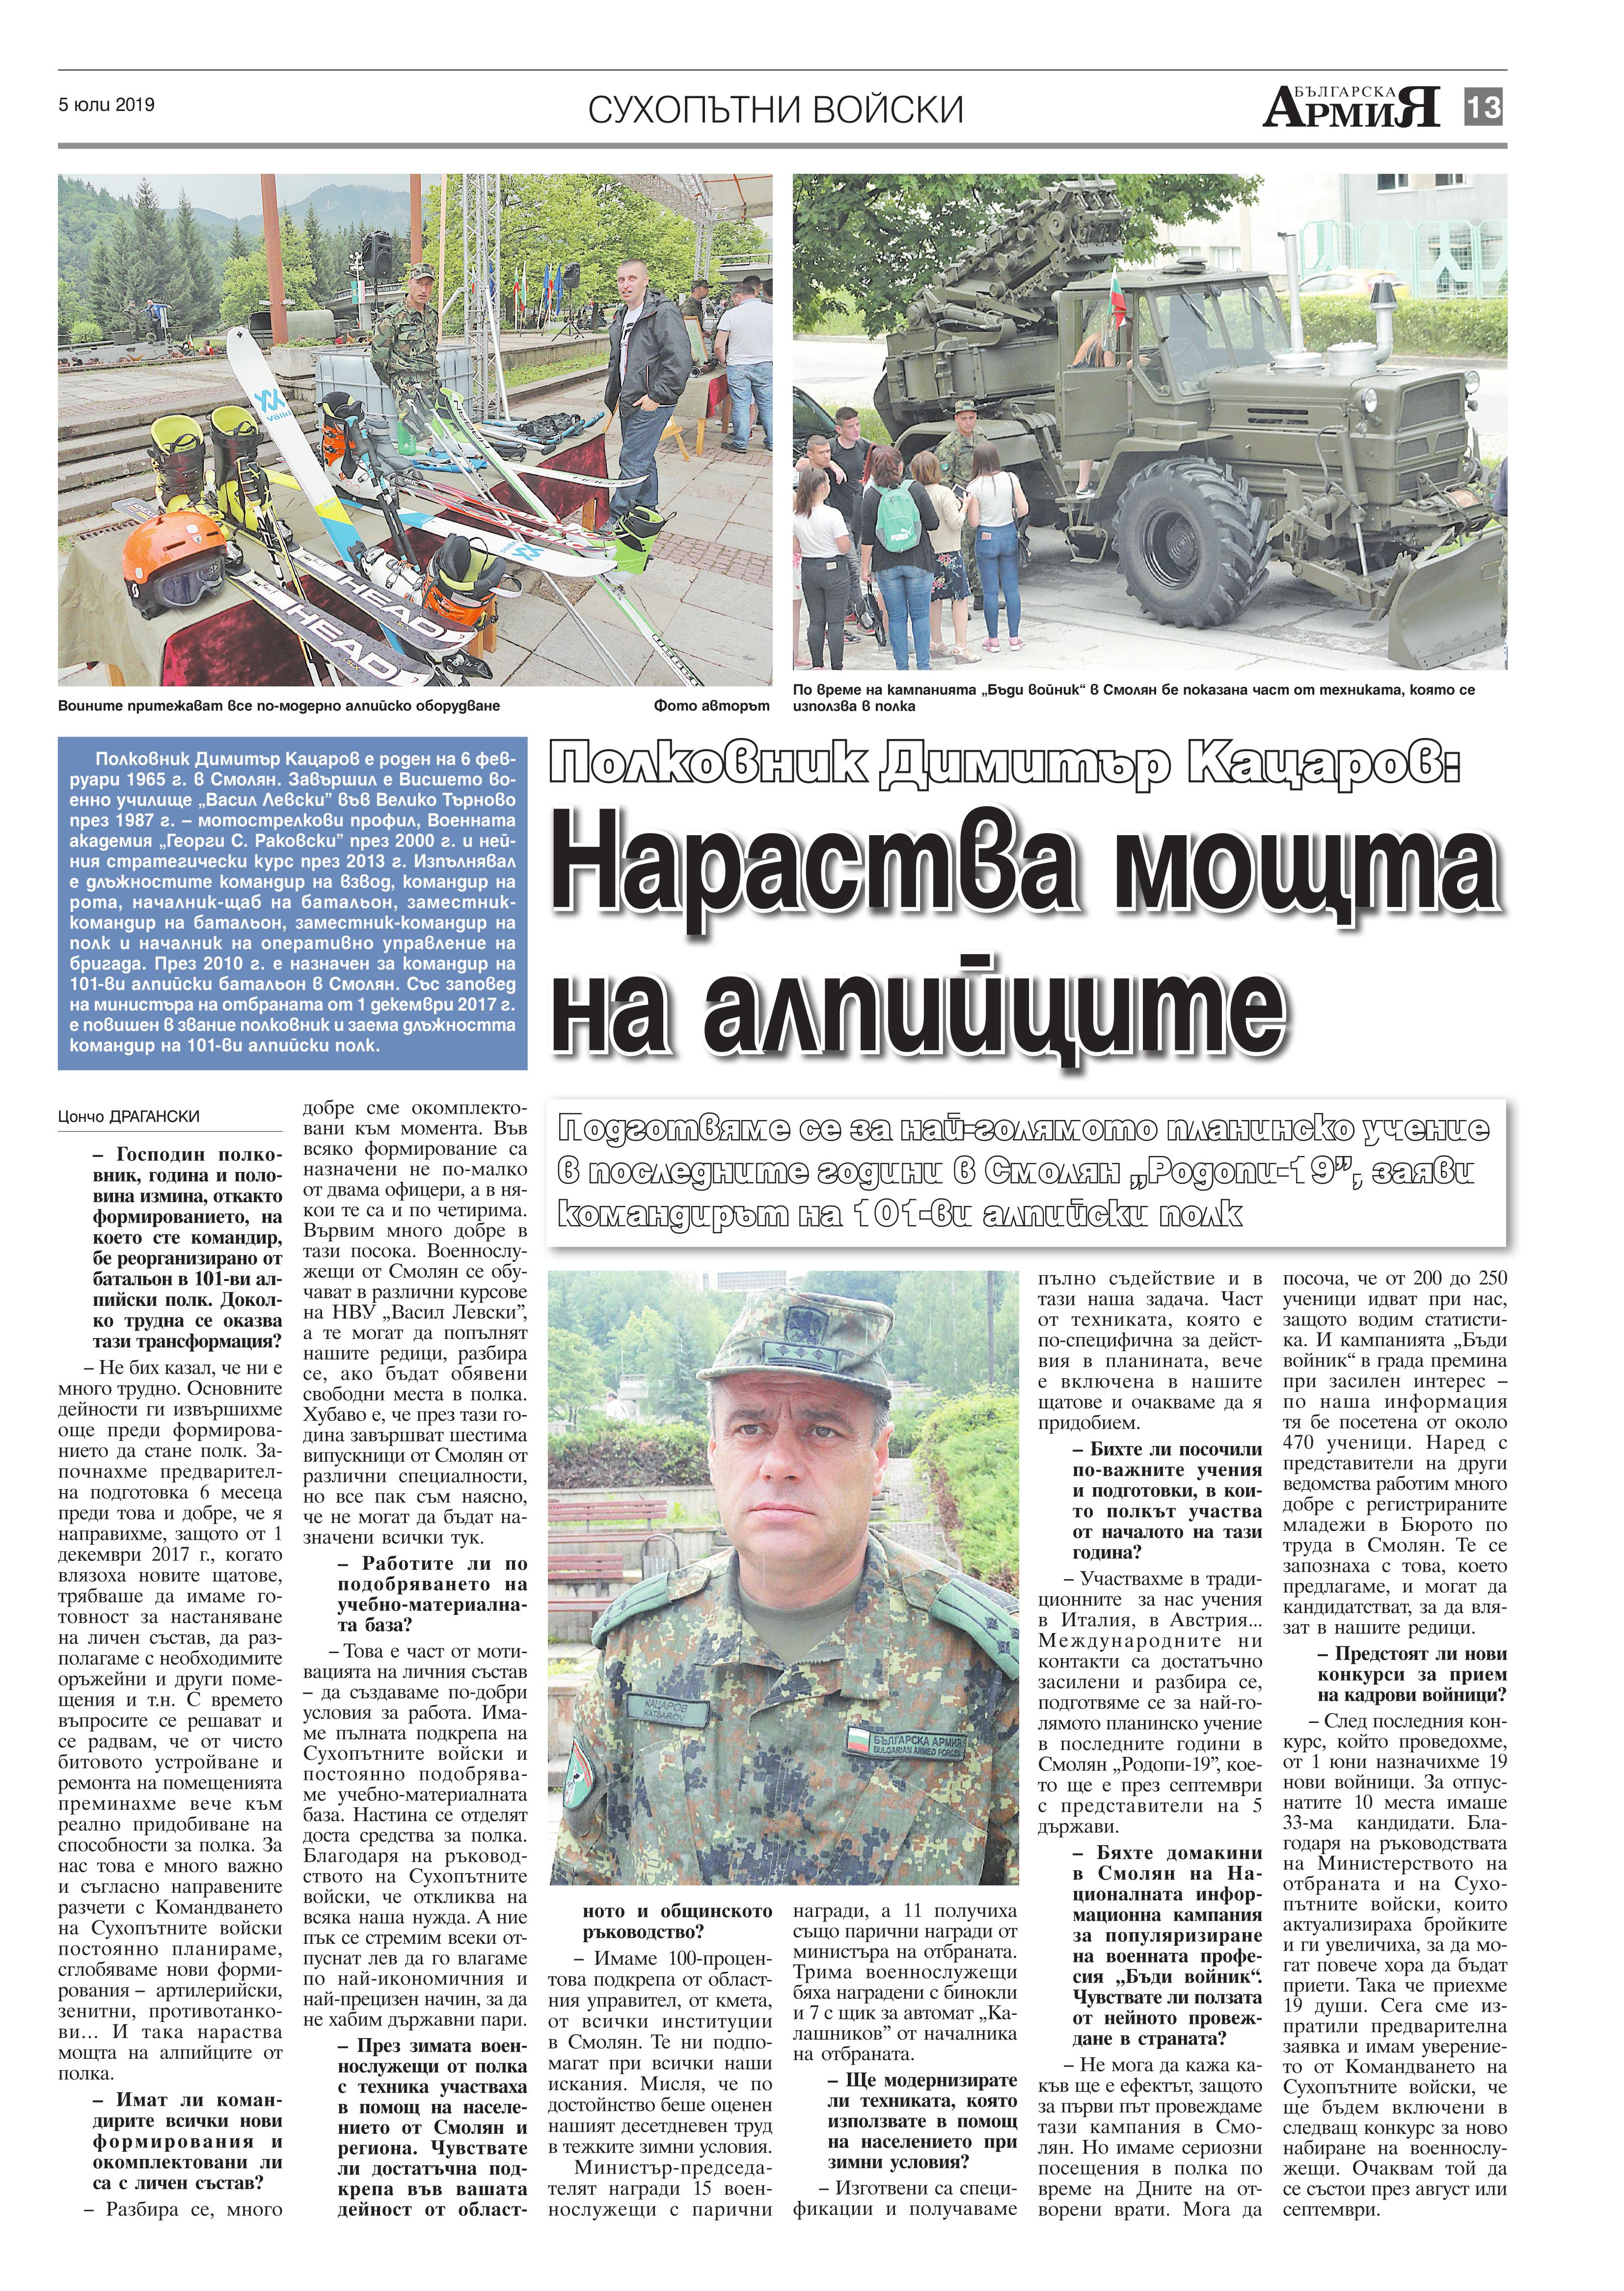 https://armymedia.bg/wp-content/uploads/2015/06/13.page1_-102.jpg